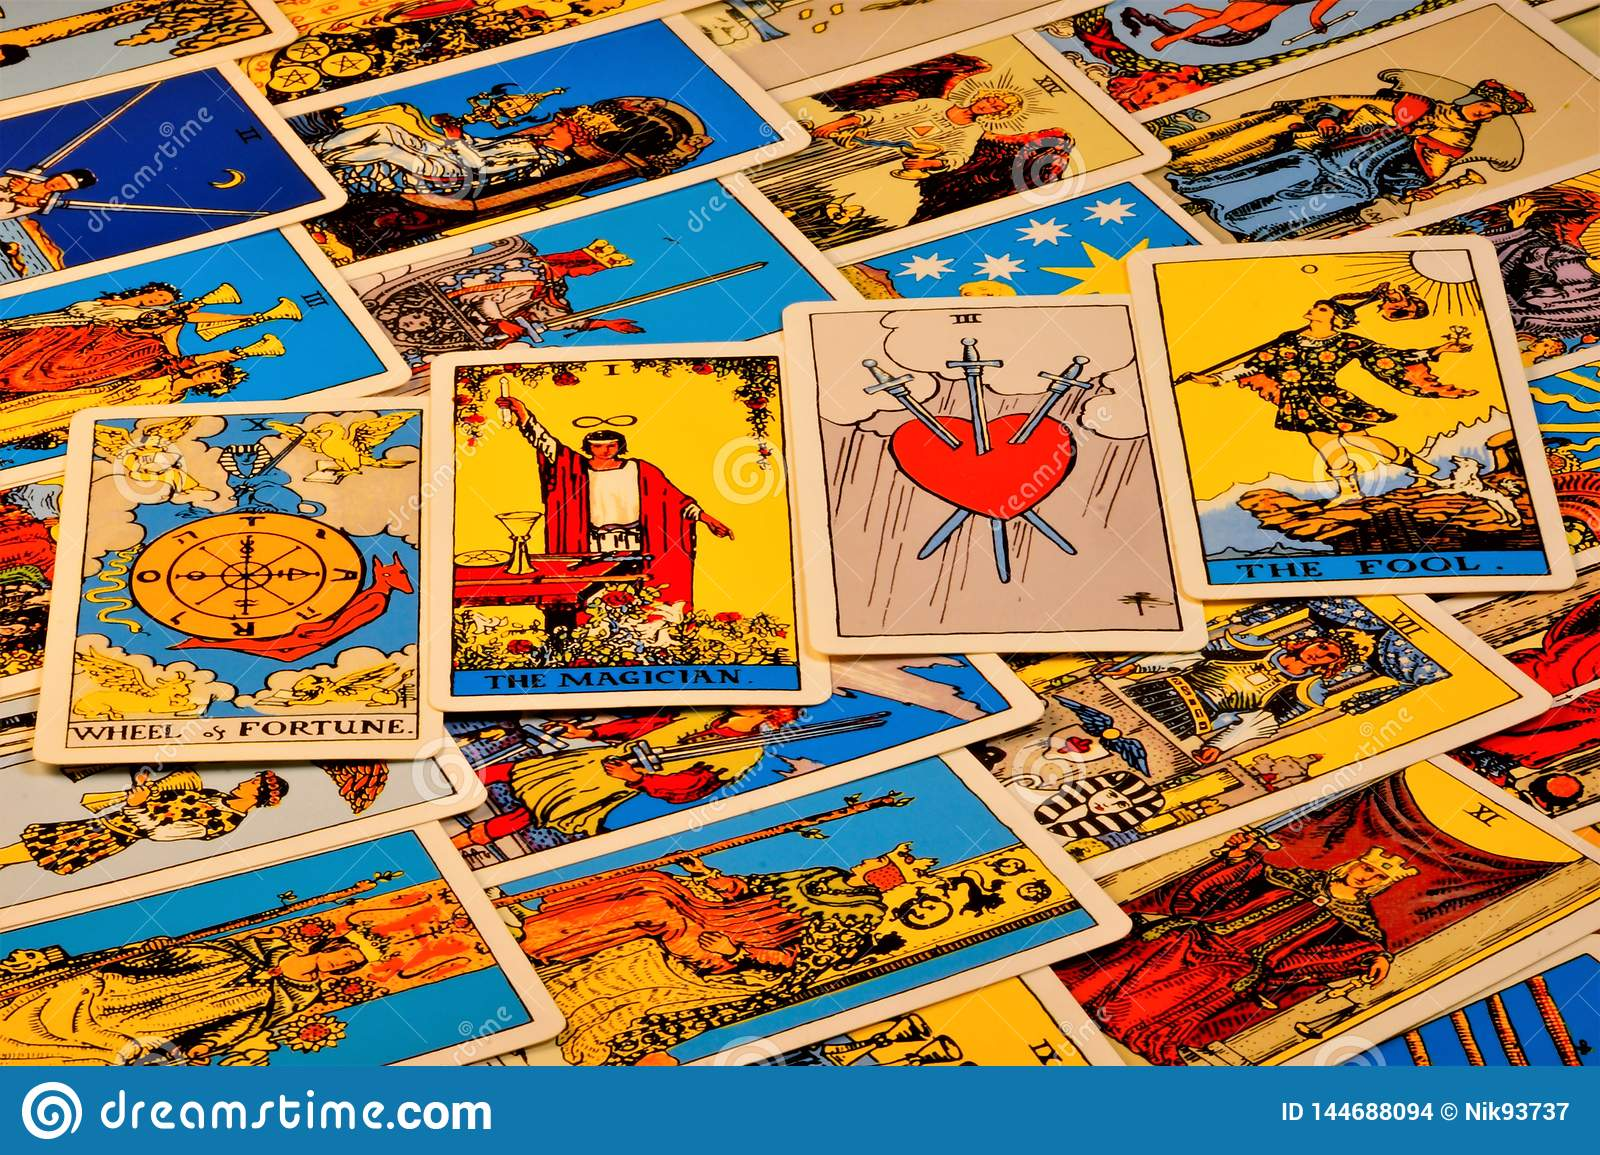 Tarot Cards The Mysterious Background Of Ancient Symbols Tarot Cards For Divination Prediction Prediction Of The Past The Photo Stock Image Du Ancient Tarot 144688094